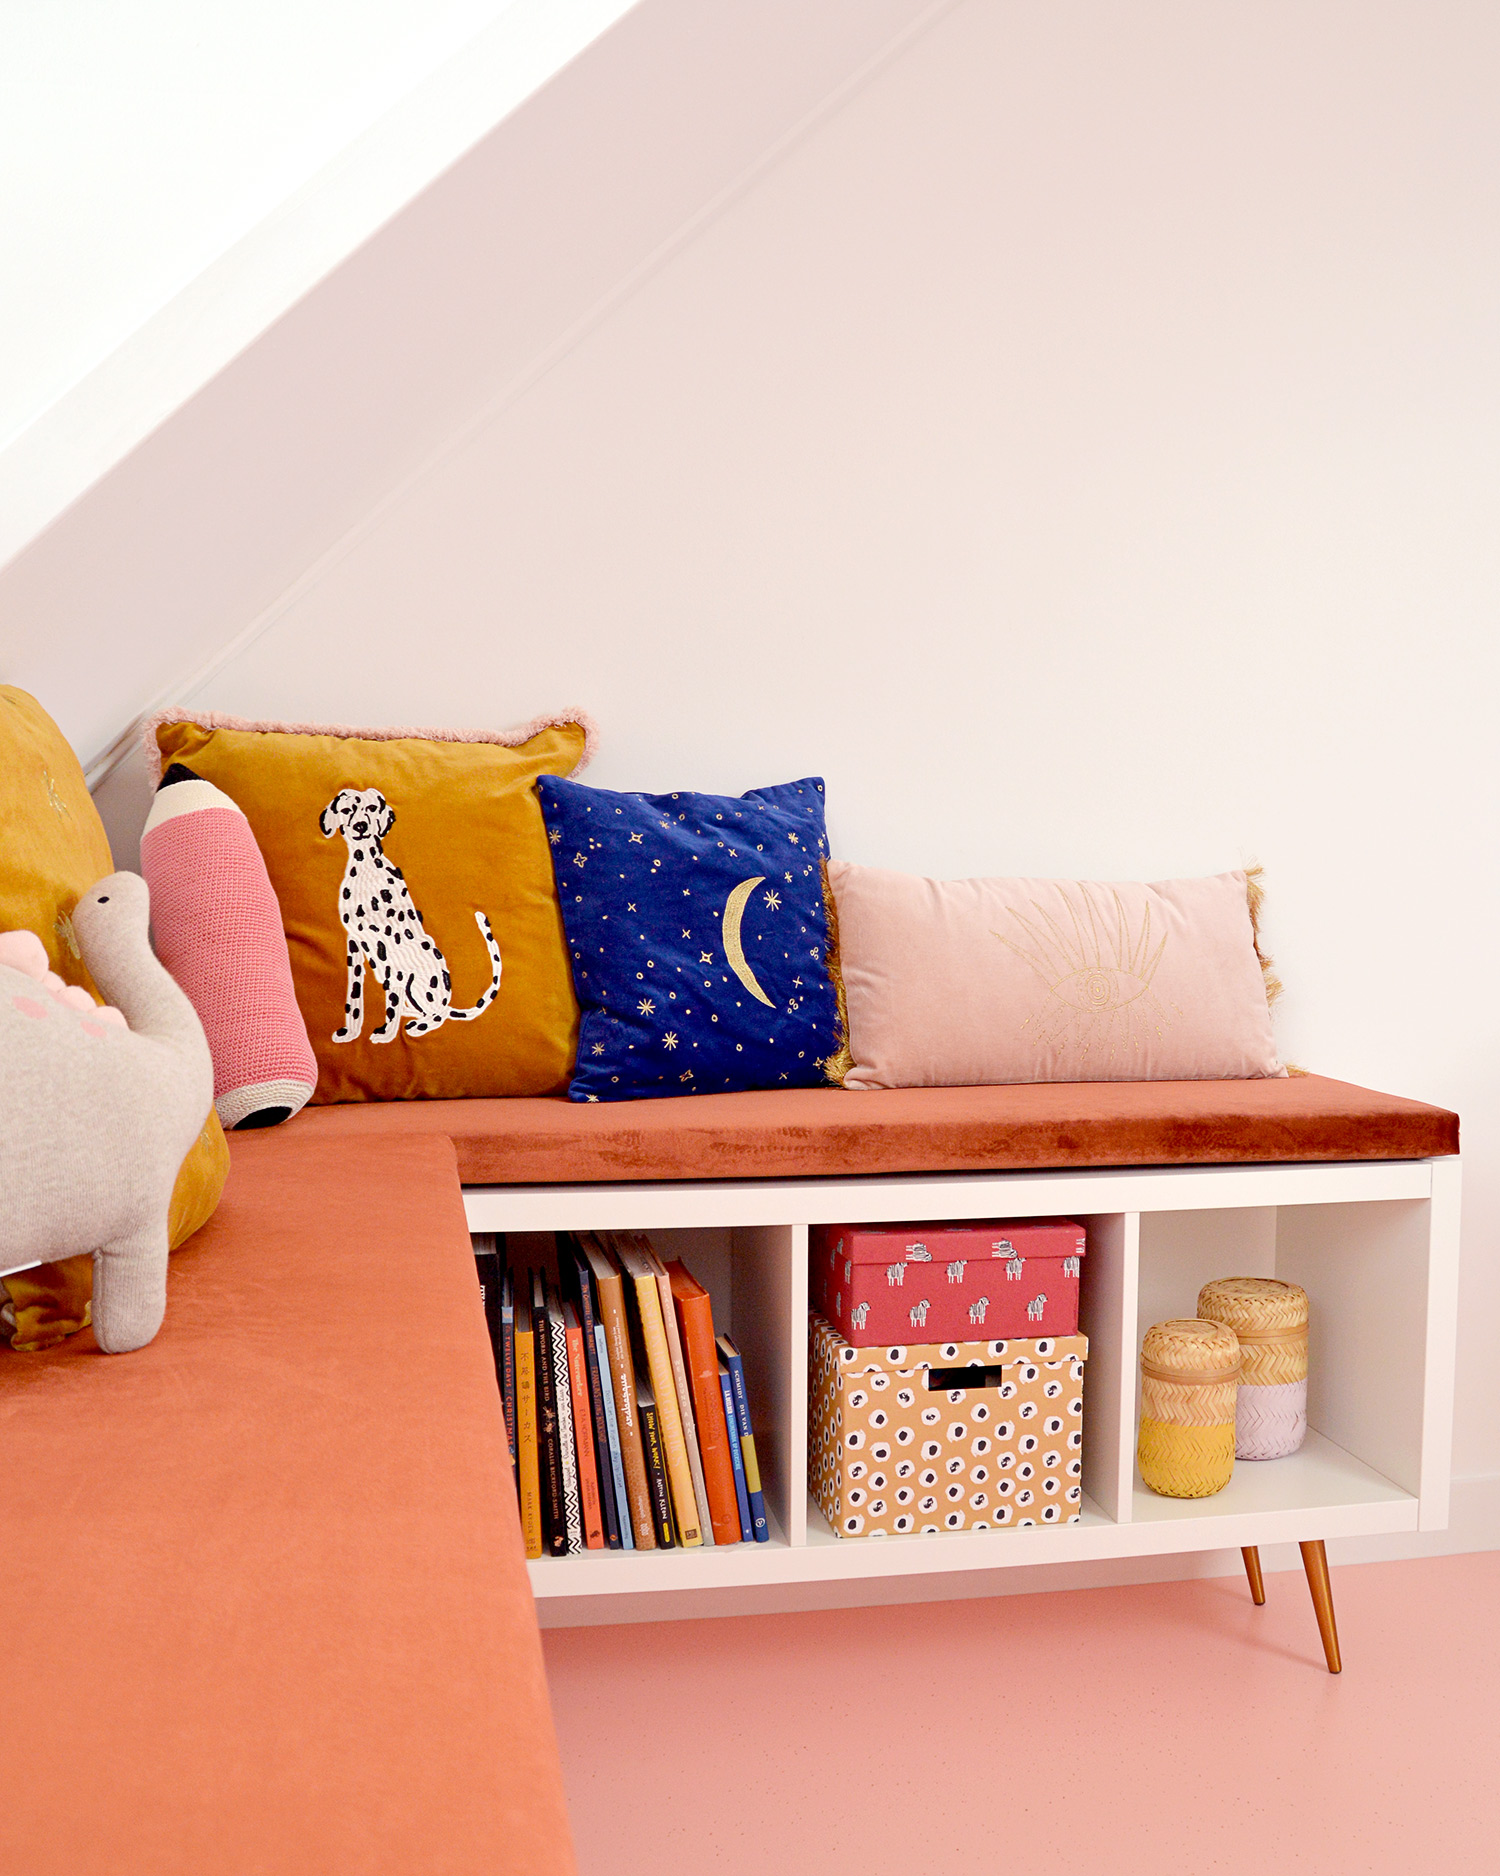 franjedesign_Nofruit_HOME